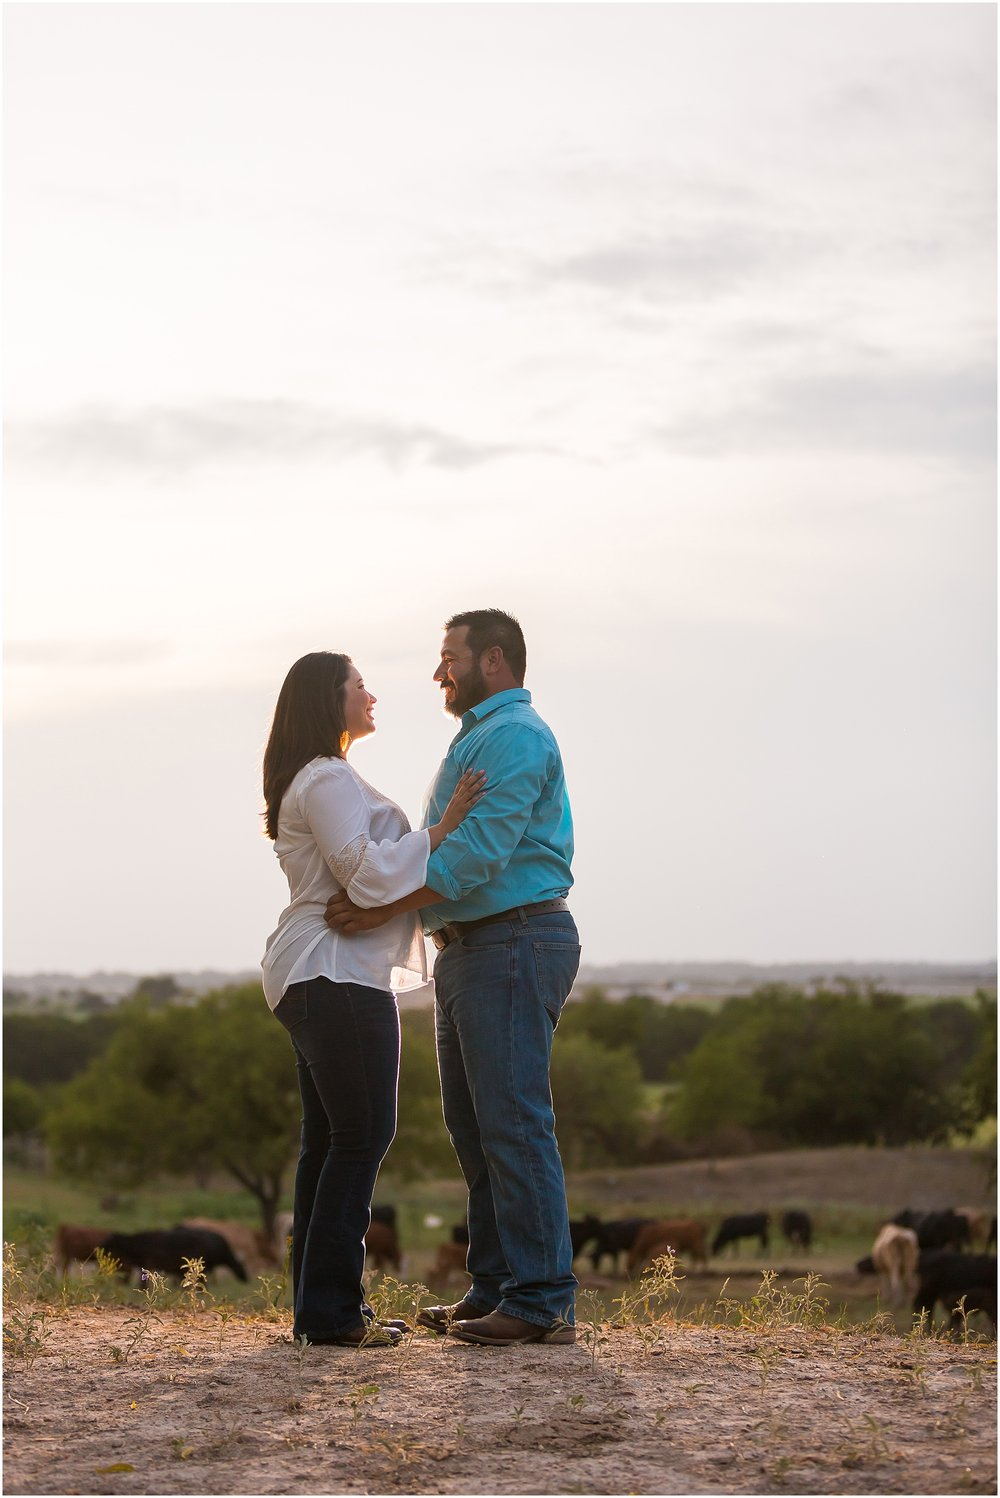 A couple embraces in a field with a Texas sunset behind them during their engagement photos on a family ranch in Dublin, TX - Jason & Melaina Photography - www.jasonandmelaina.com